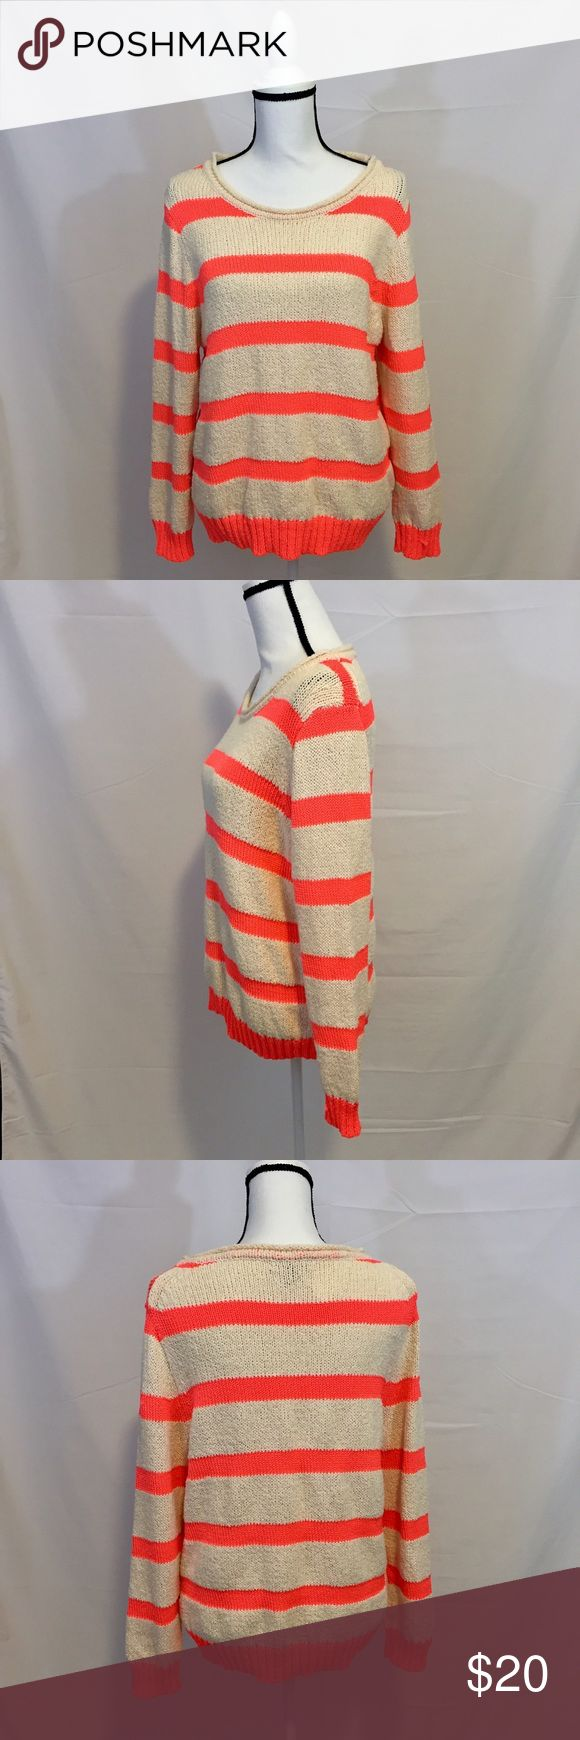 J Crew Hot Pink & Cream Striped Sweater Super cute for spring! It's a lighter weight Knit so pair with white shorts or wear over a swimsuit for the transition into warmer temps. There is a small snag on on the left wrist but other than that it's in great condition. Size XL but could be worn oversized for S-M! J. Crew Tops